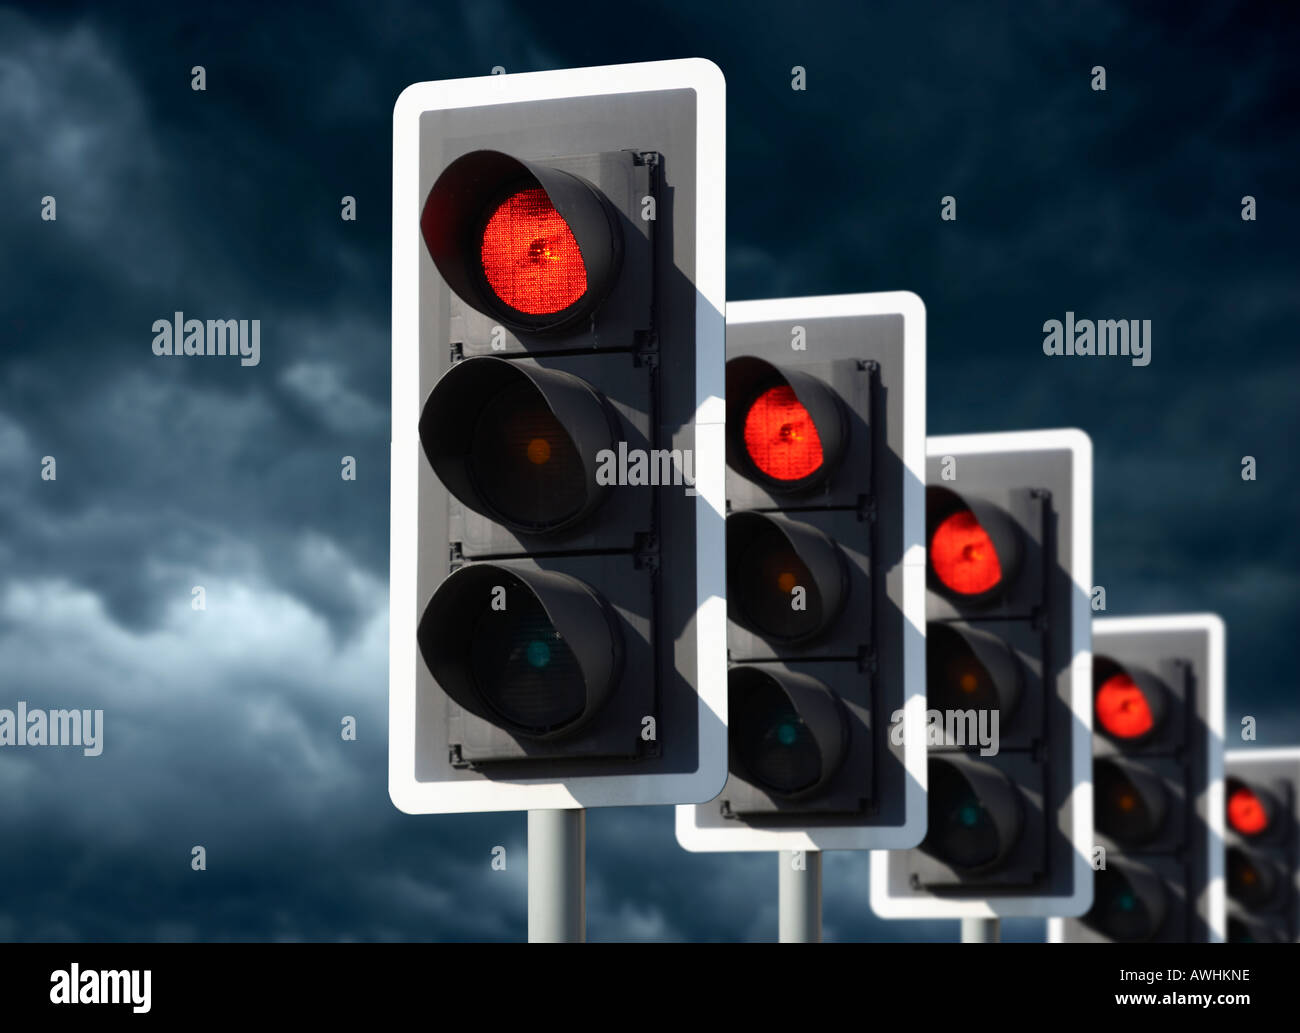 ROW OF FIVE ROAD TRAFFIC LIGHTS SHOWING RED WITH STORMY SKY - Stock Image